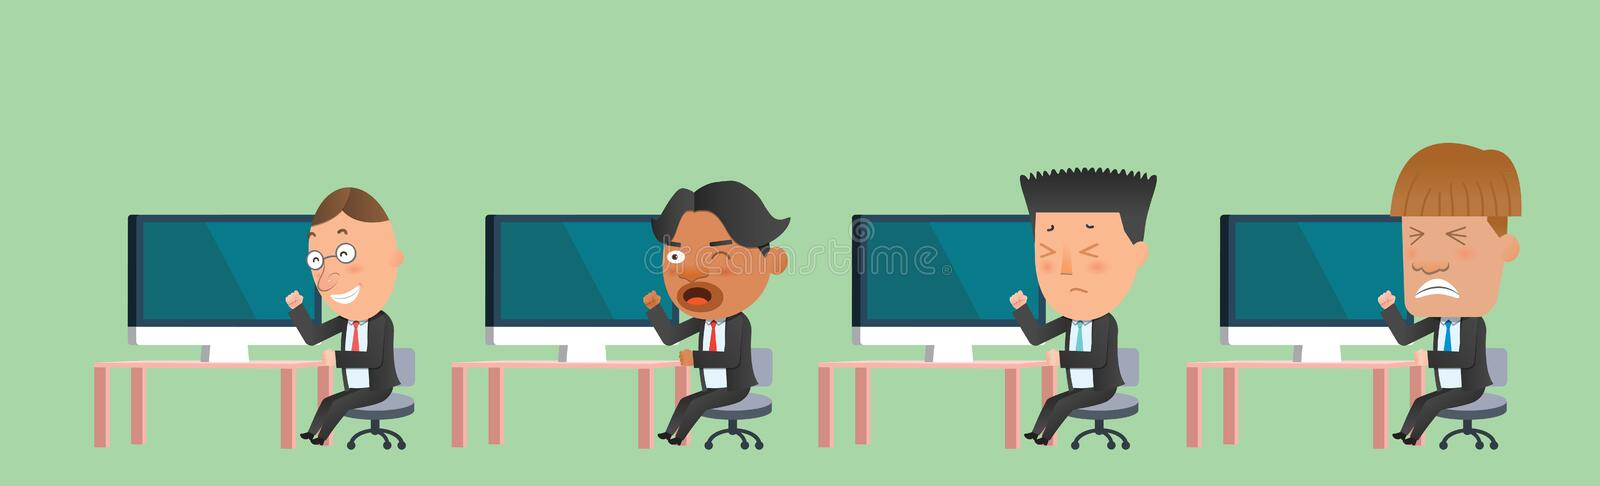 Business corporation team computer concept flat character vector illustration